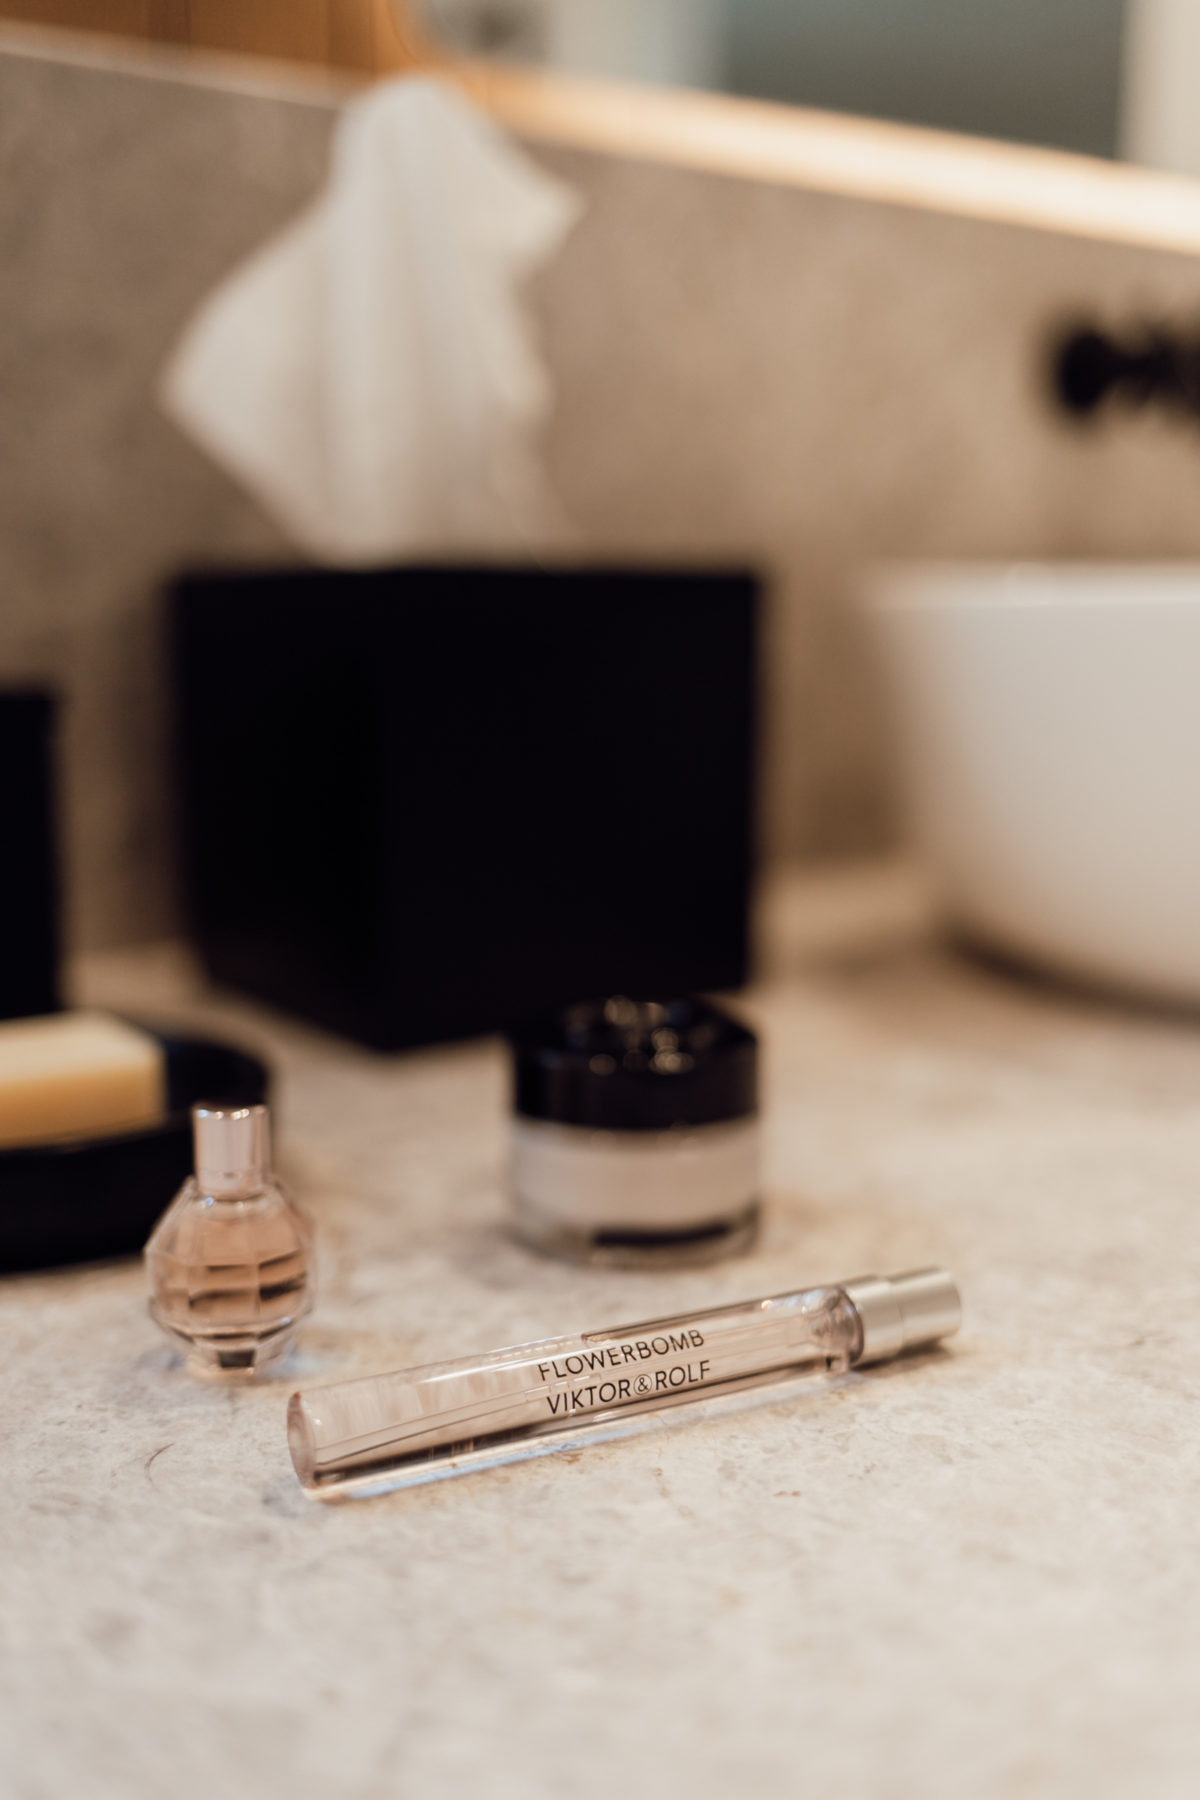 nordstrom beauty exclusives